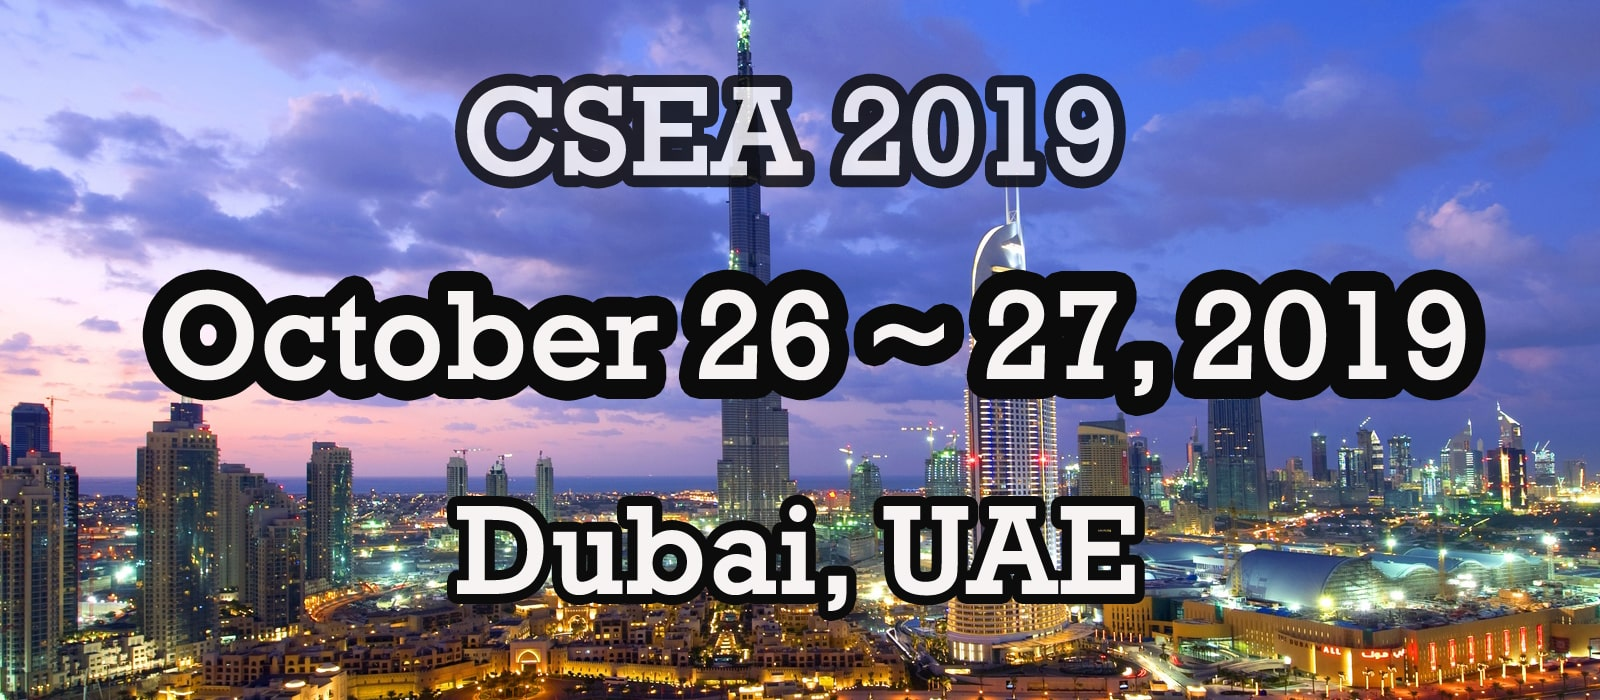 5th International Conference on Computer Science, Engineering And Applications (CSEA 2019)